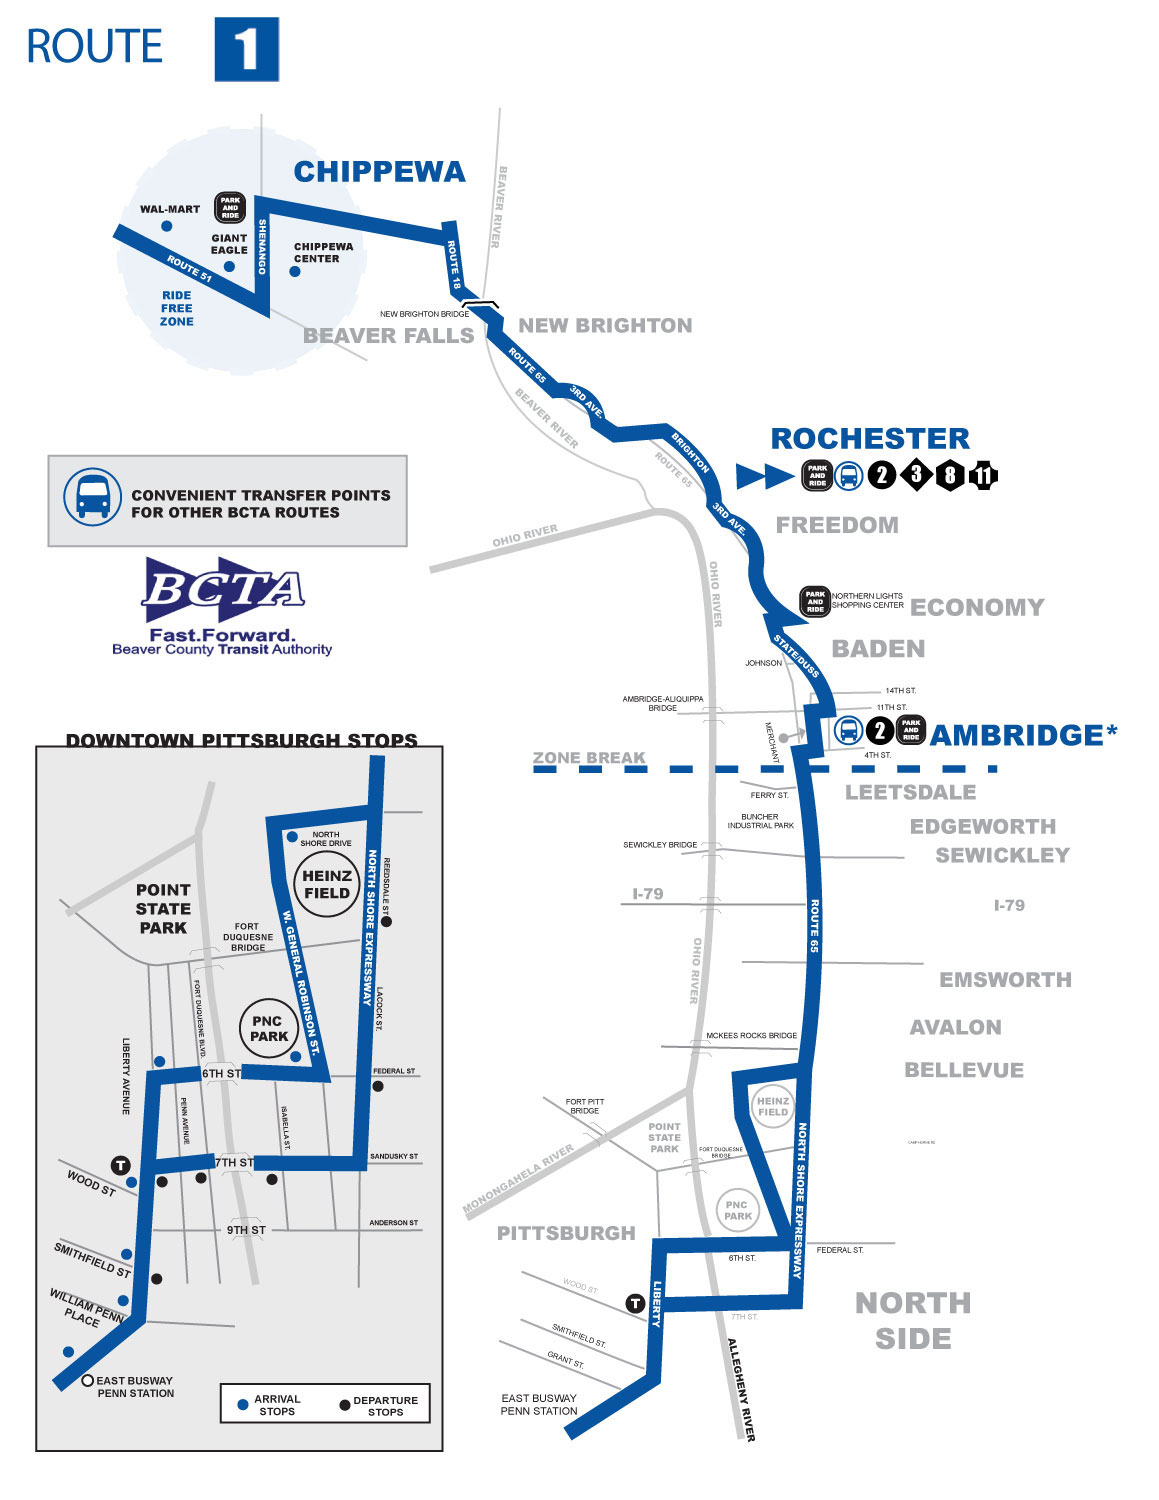 Route 1 Map